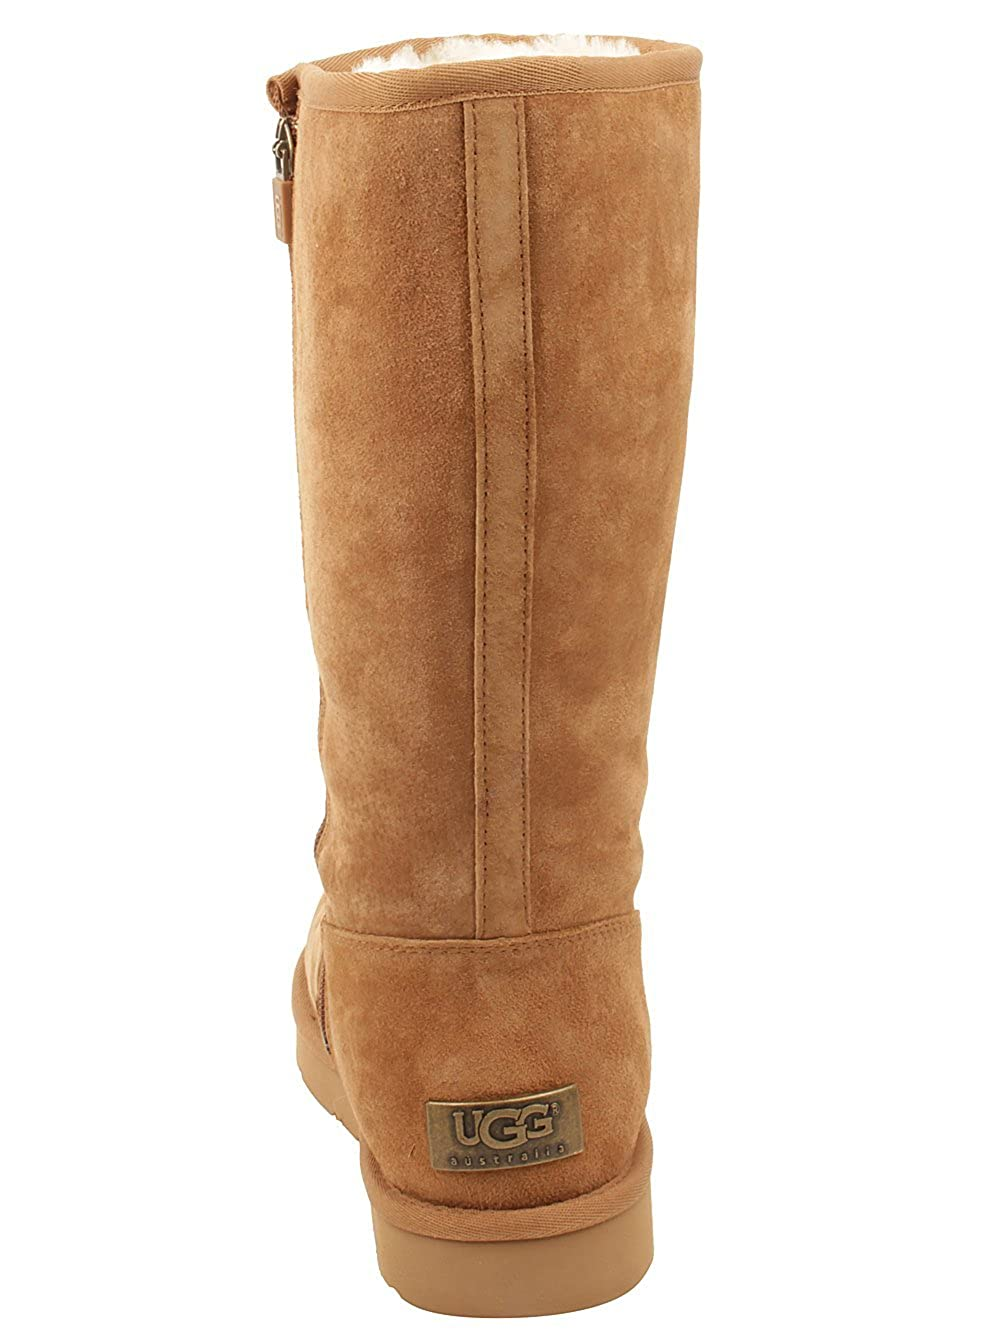 805eb166d46 UGG Australia Sumner Boot in Chestnut: Amazon.co.uk: Shoes & Bags